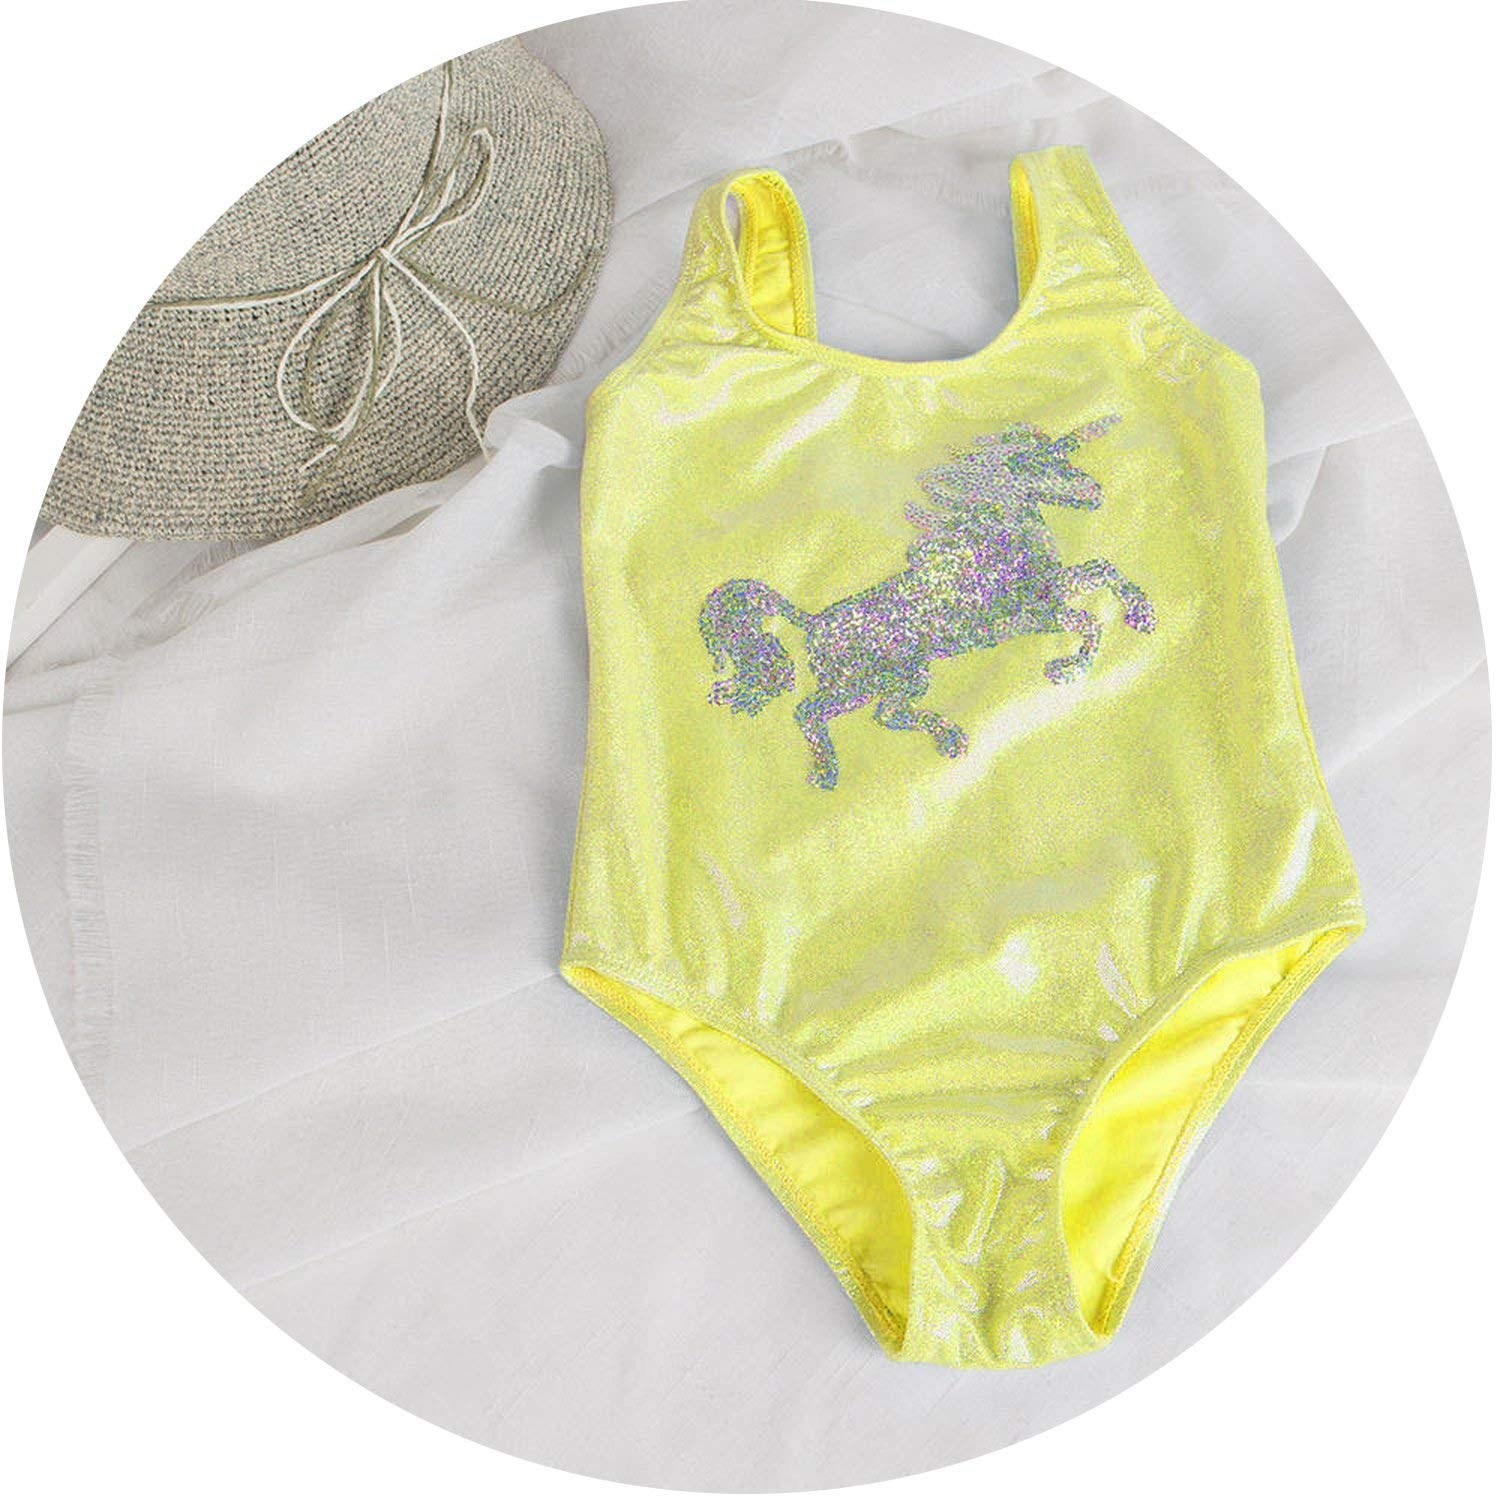 Unicorn Children Swimwear for Girls one Piece Children Swimsuits Girls Swimsuit Kids Bathing Suit 3-8 Years Sliver Sequins 22,Yellow,7 Years